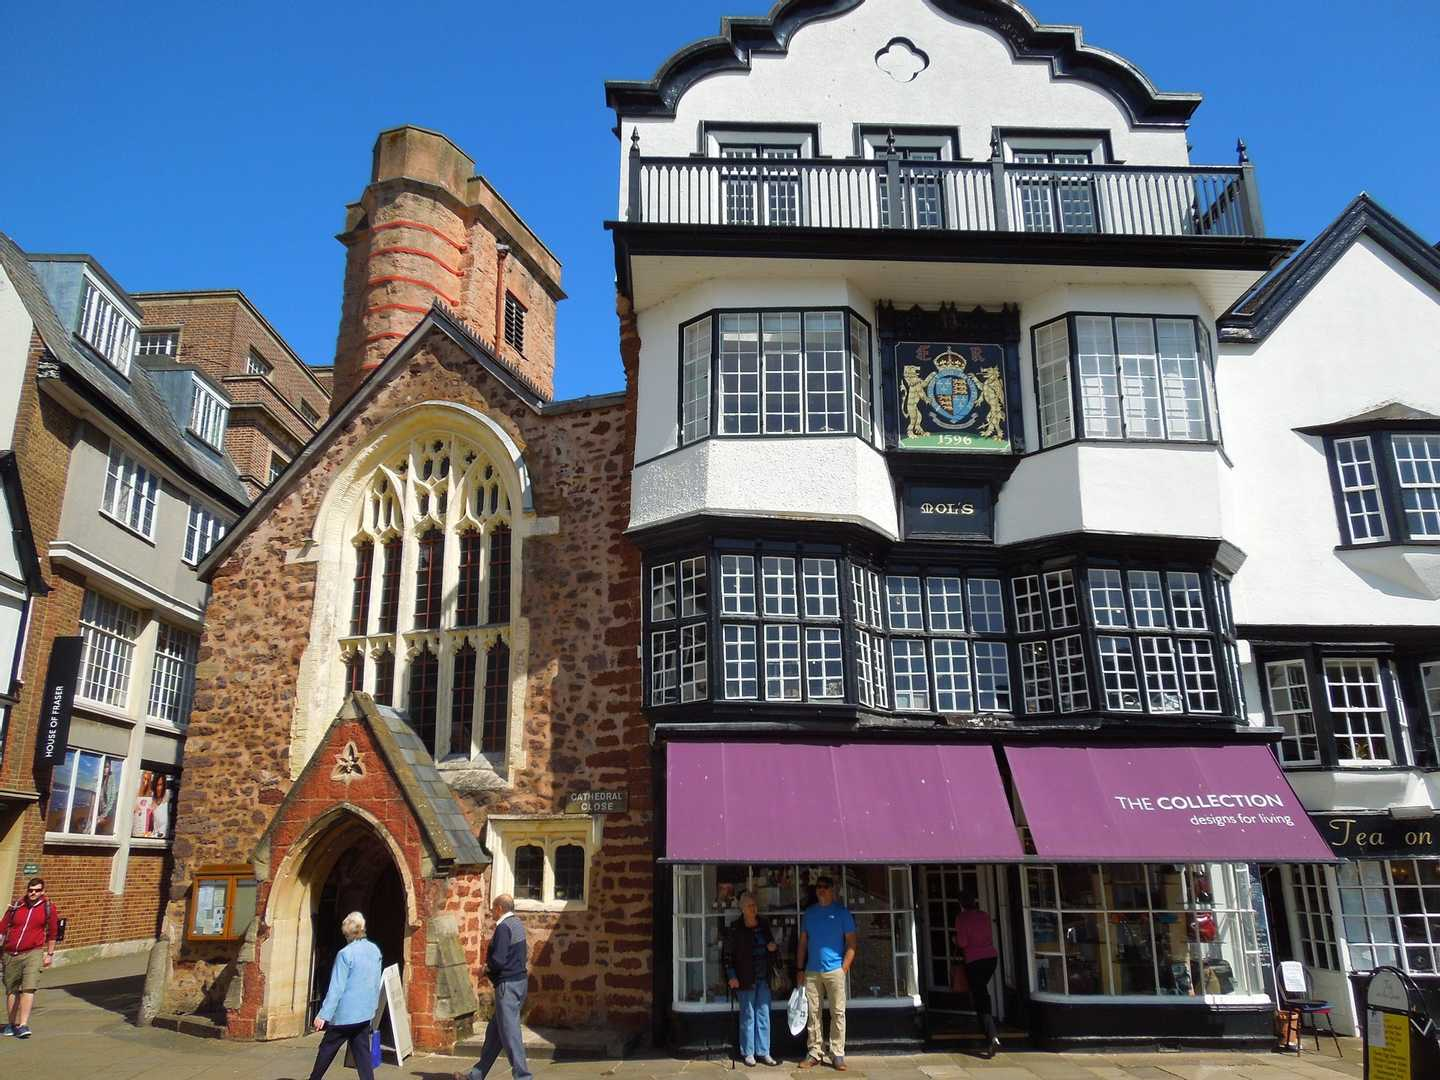 Exeter city centre